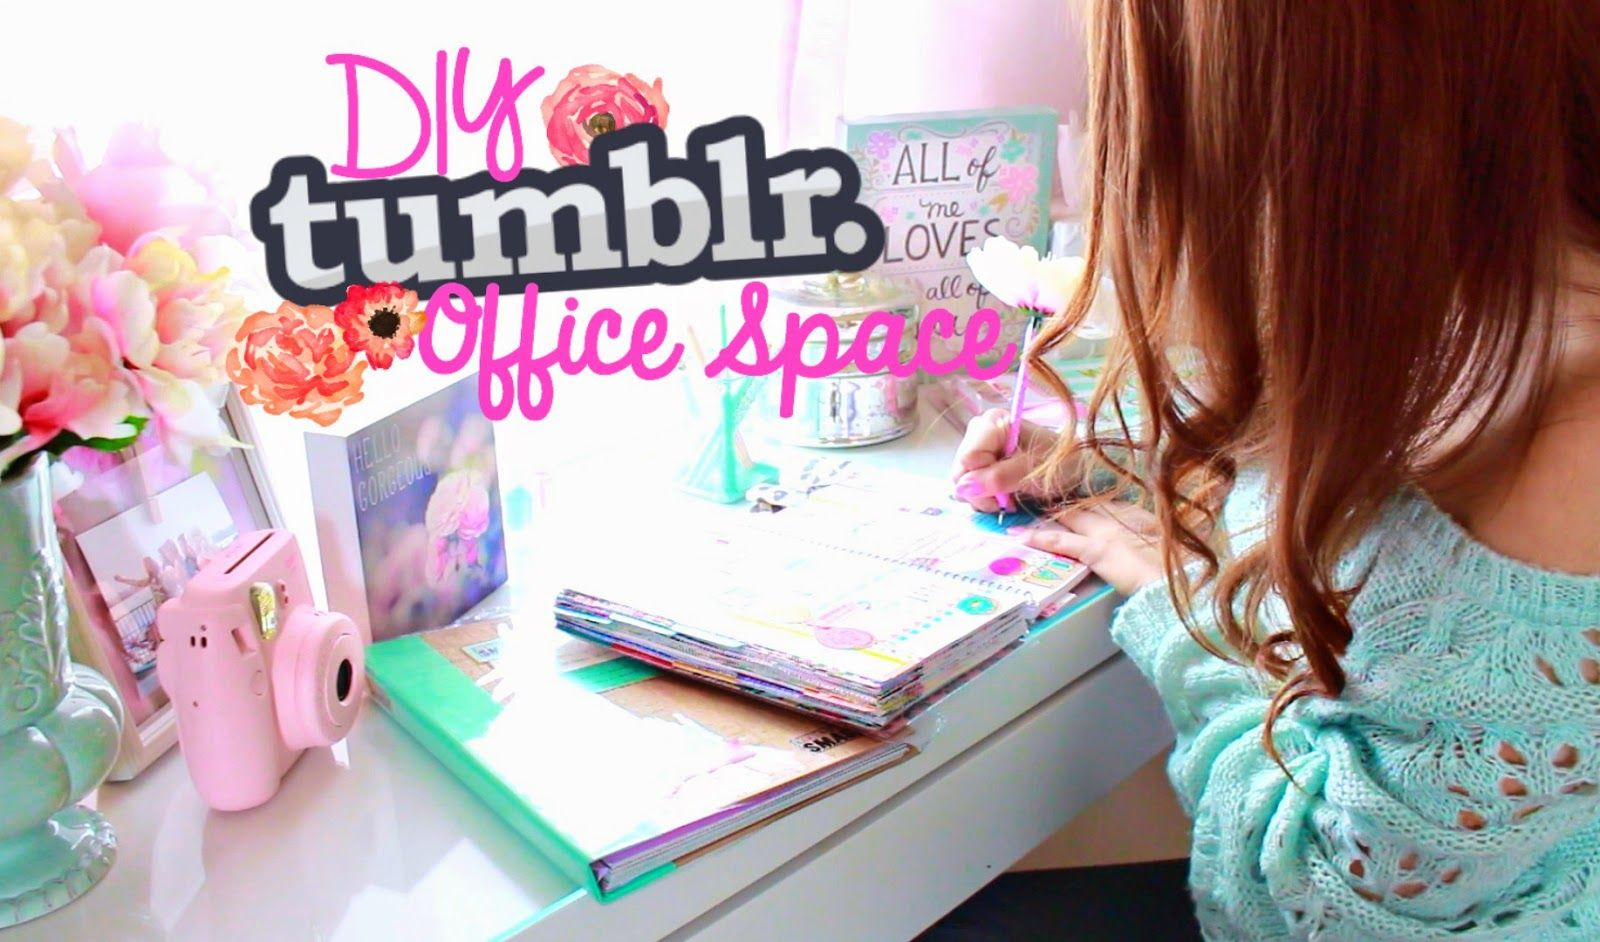 Diy tumblr inspired office desk space room decor for Zimmerdekoration diy